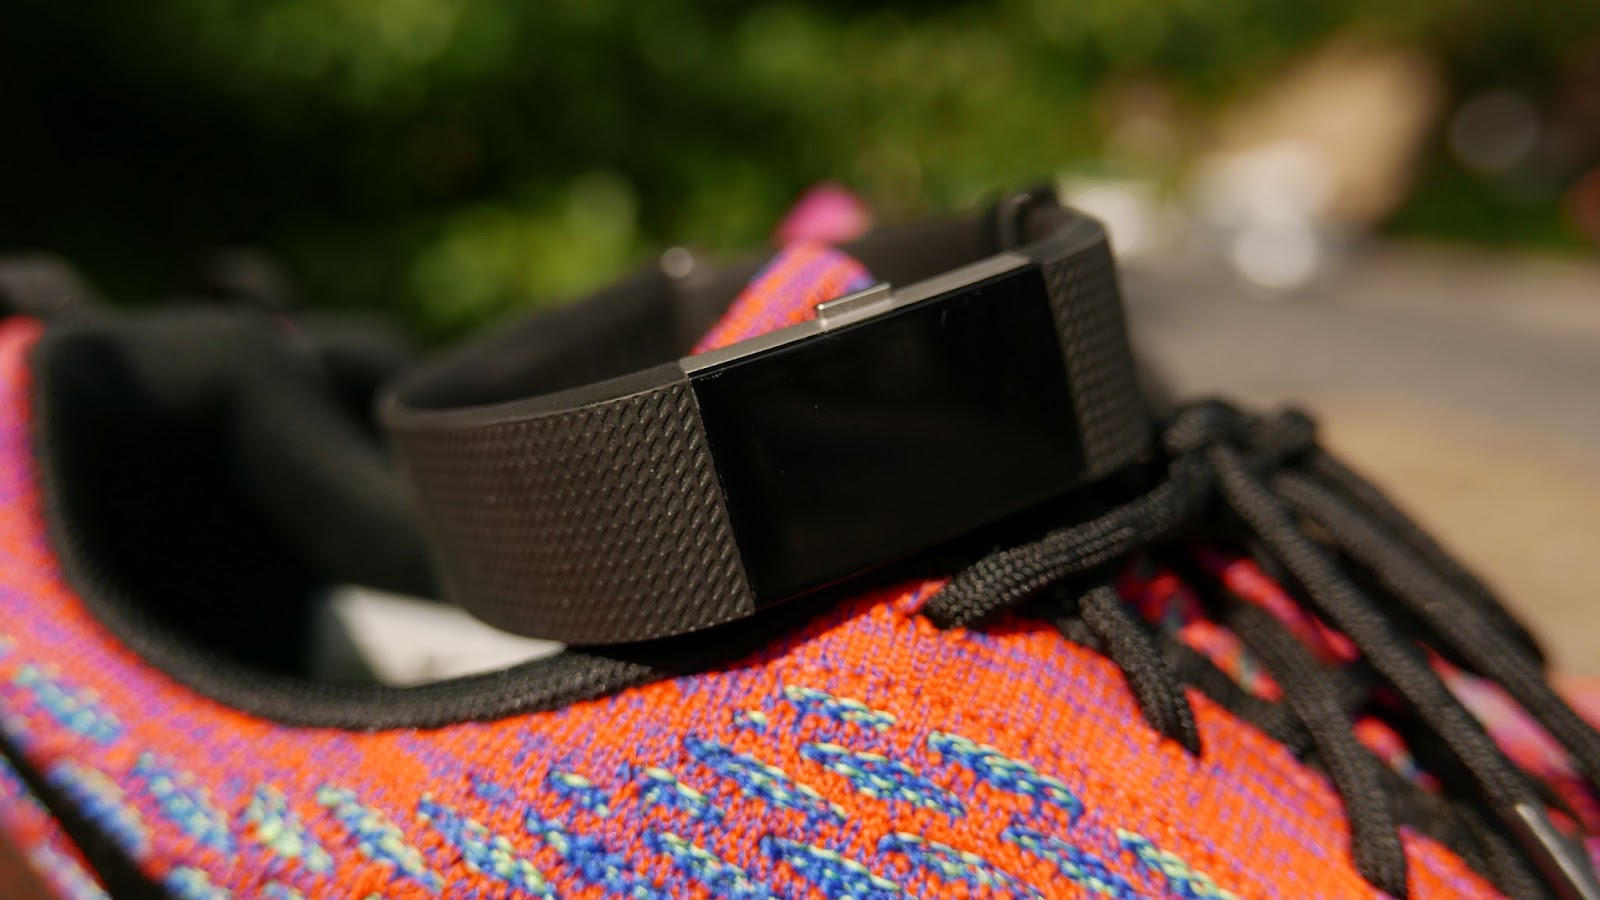 Fitbit Charge 2 review - The Professional